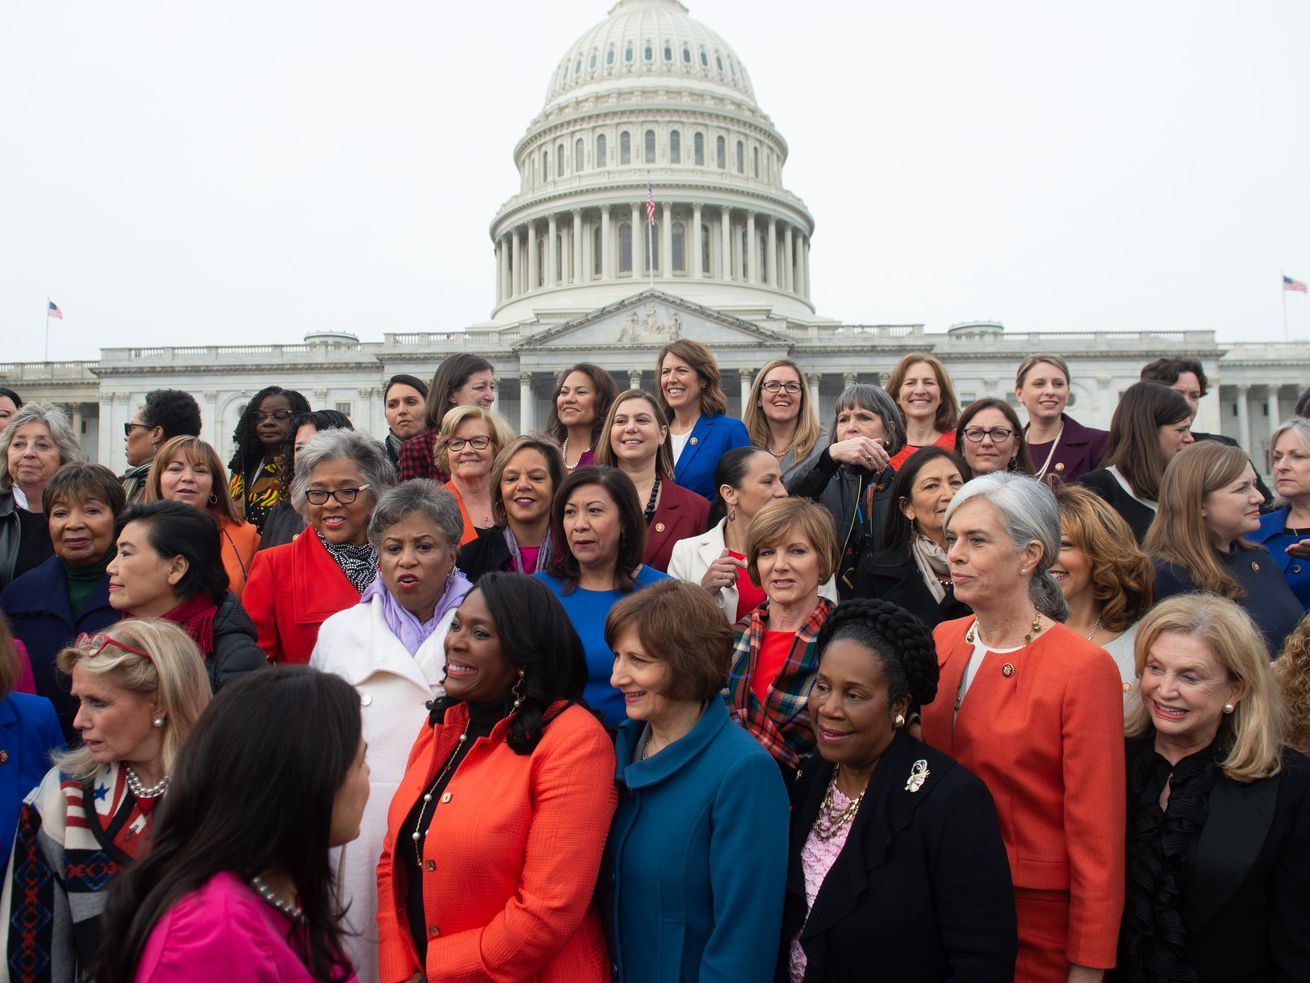 Female House Democratic members of the 116th Congress prepare for a photo opportunity outside the US Capitol in Washington, DC, January 4, 2019.